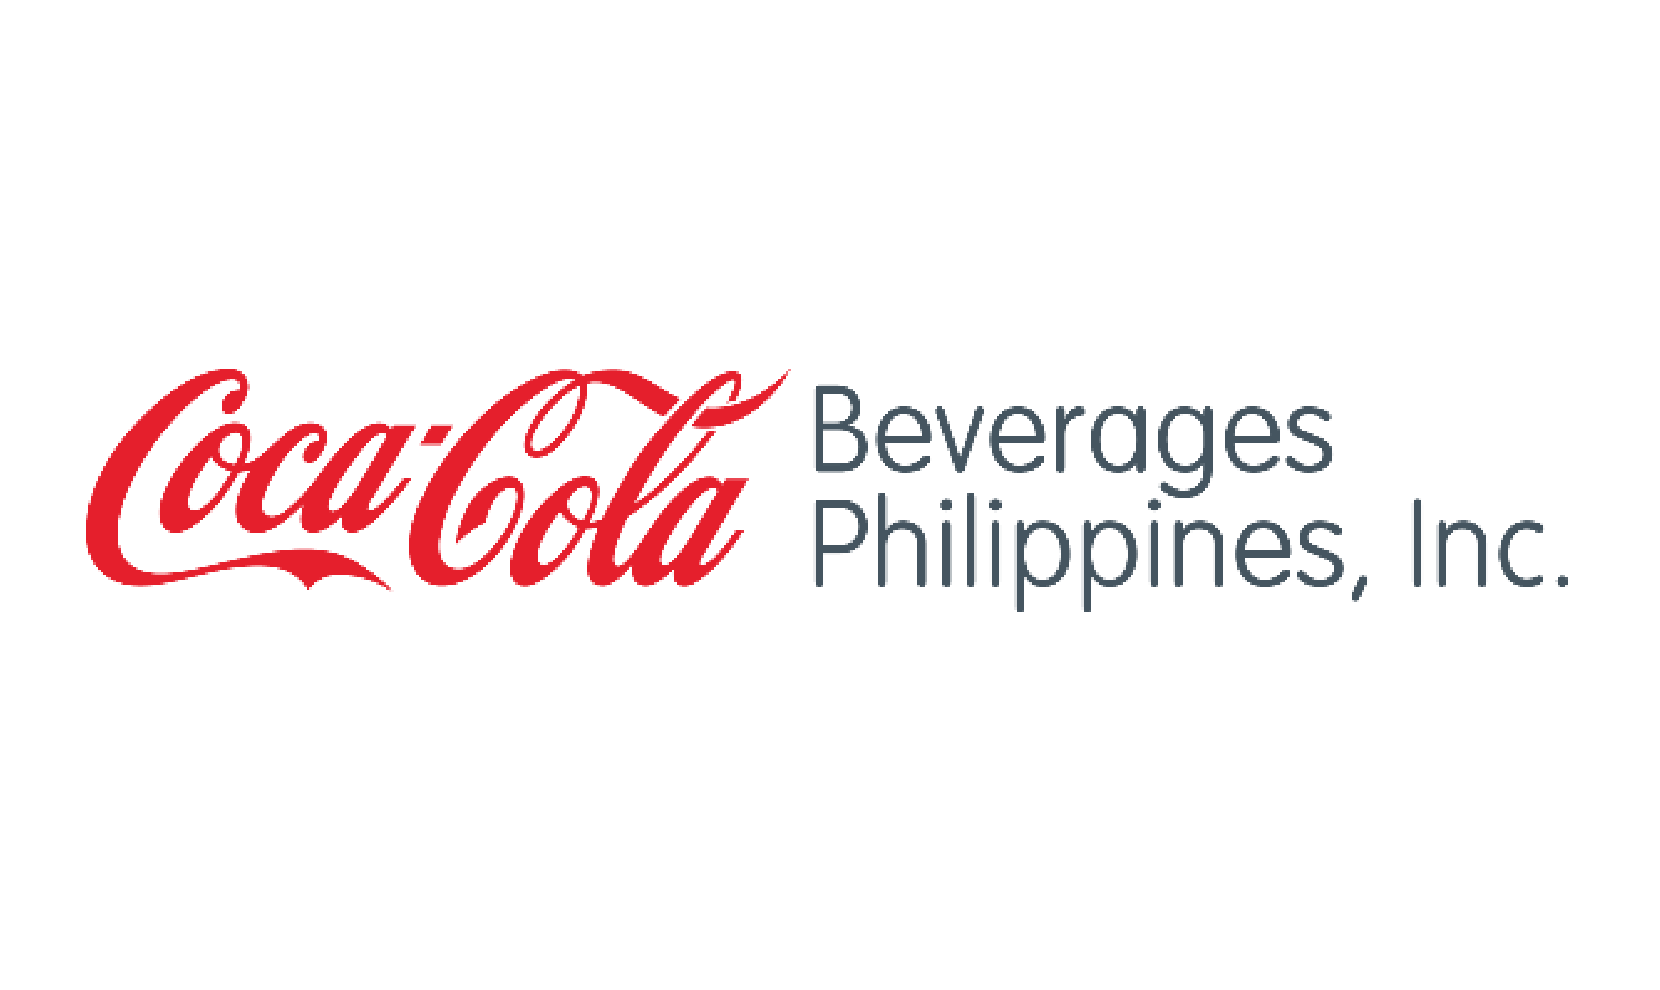 coca-cola-to-invest-3-billion-pesos-in-the-philippine-market-in-2021-to-upgrade-its-manufacturing-plants